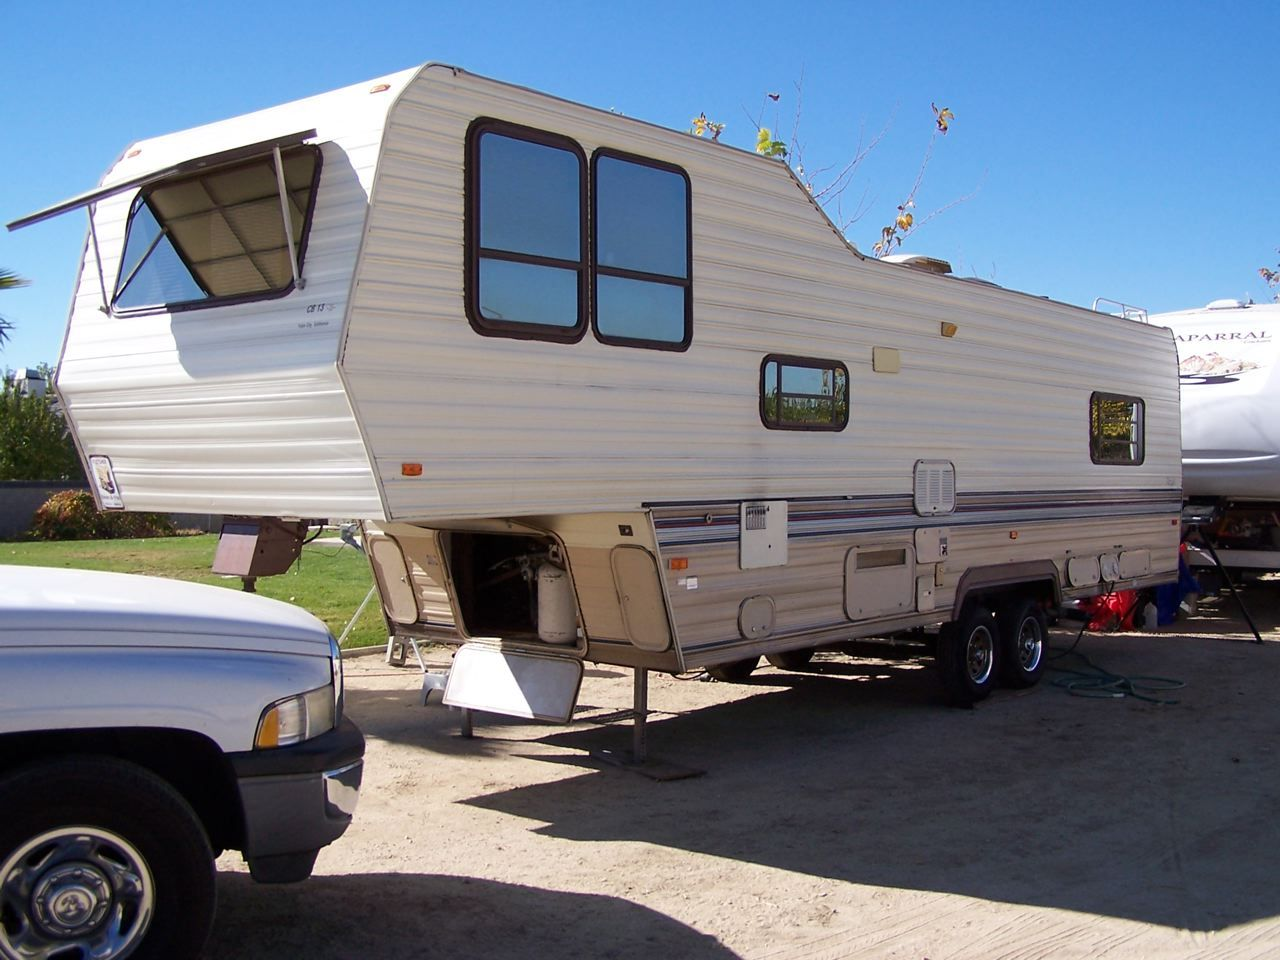 5th wheel campers prowler regal 5th wheel travel trailer rv [ 1280 x 960 Pixel ]